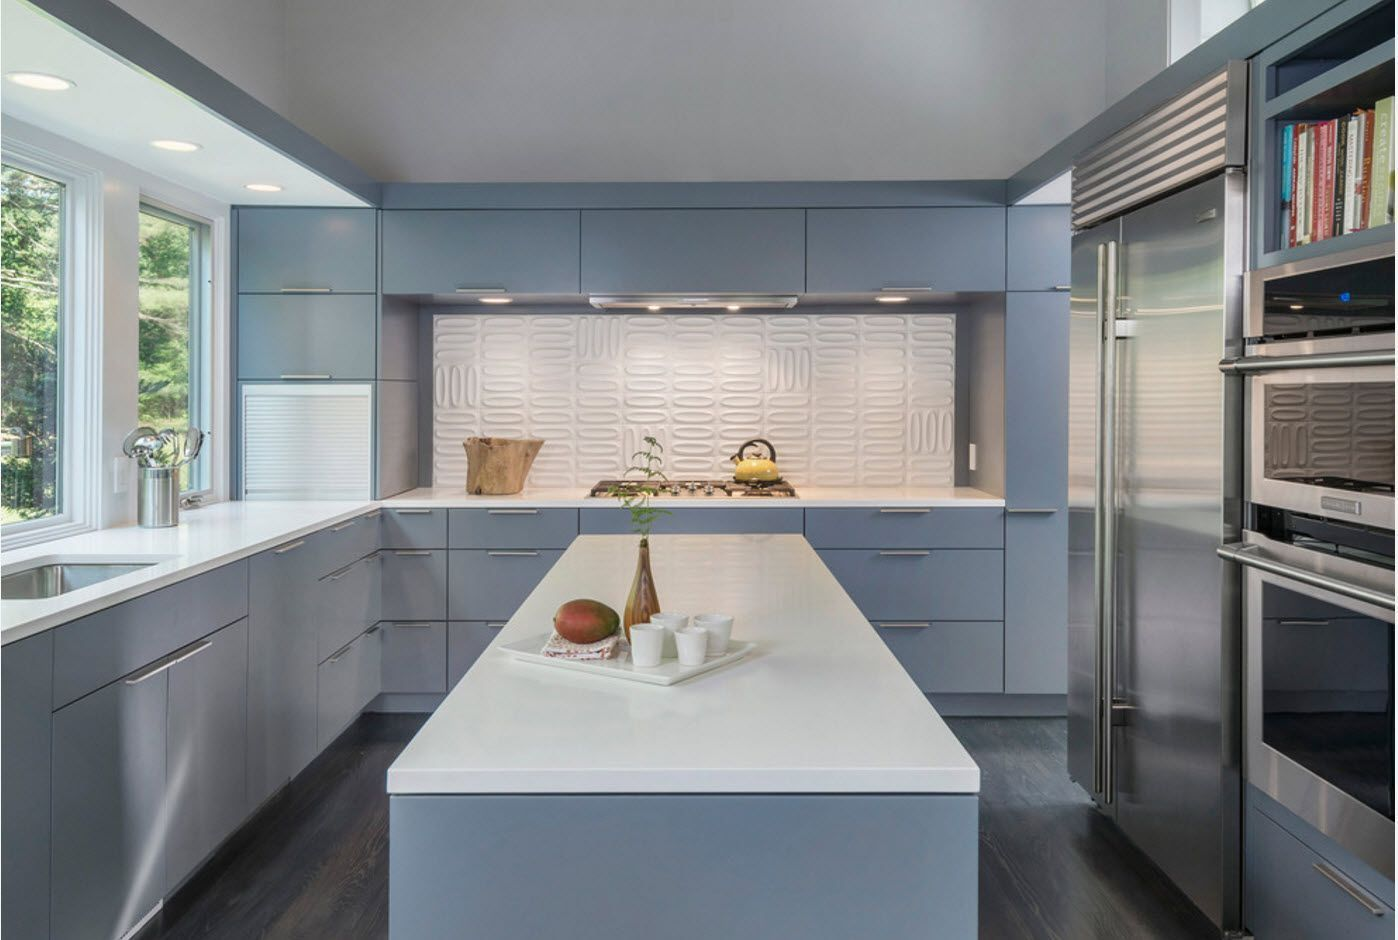 Light blue color scheme for modern and geonetrically right kitchen with island